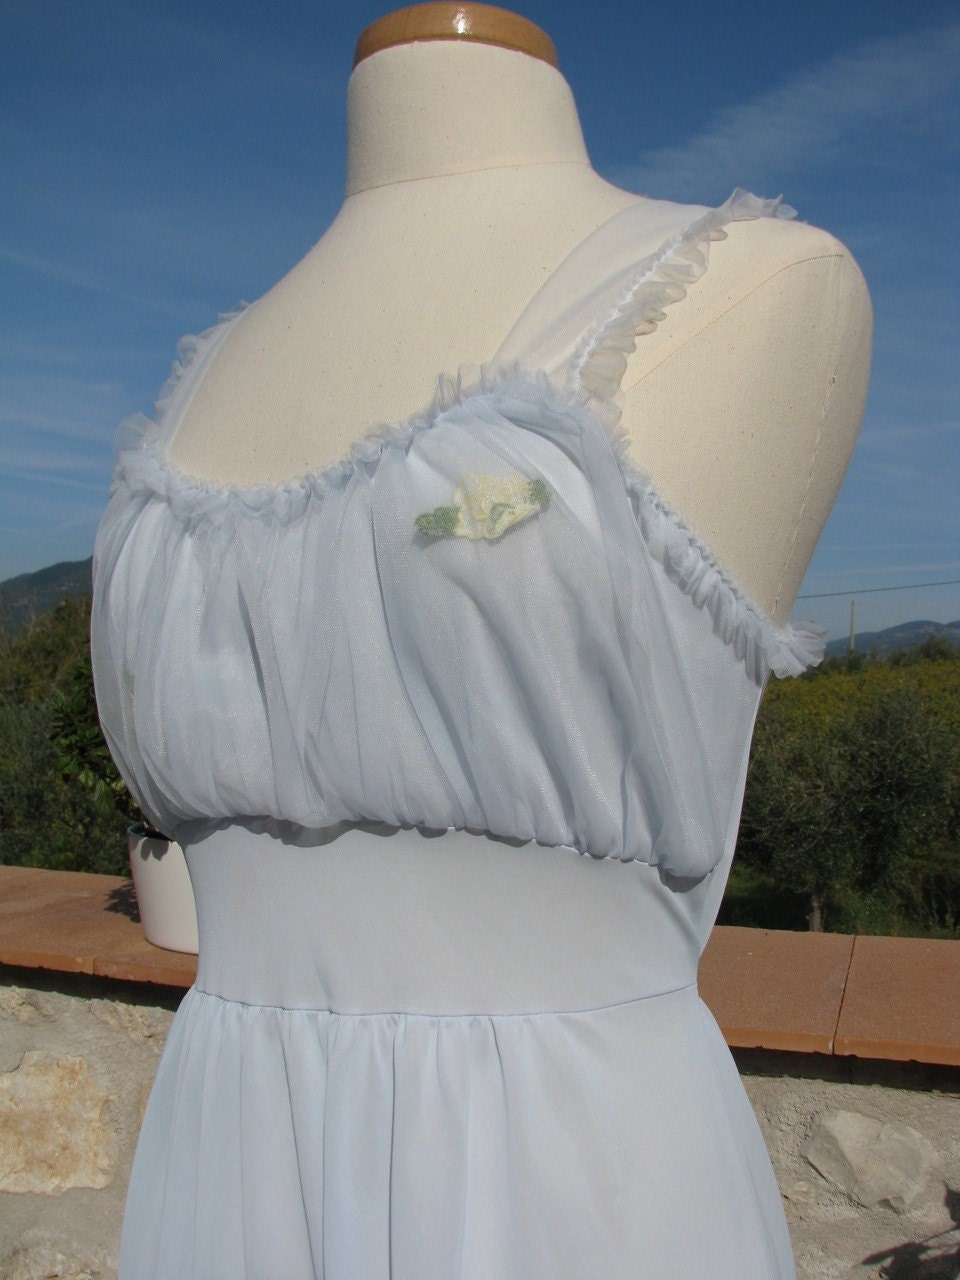 Blue Puff Slip Dress Pleated Chiffon Hem and Bust Pretty Vintage